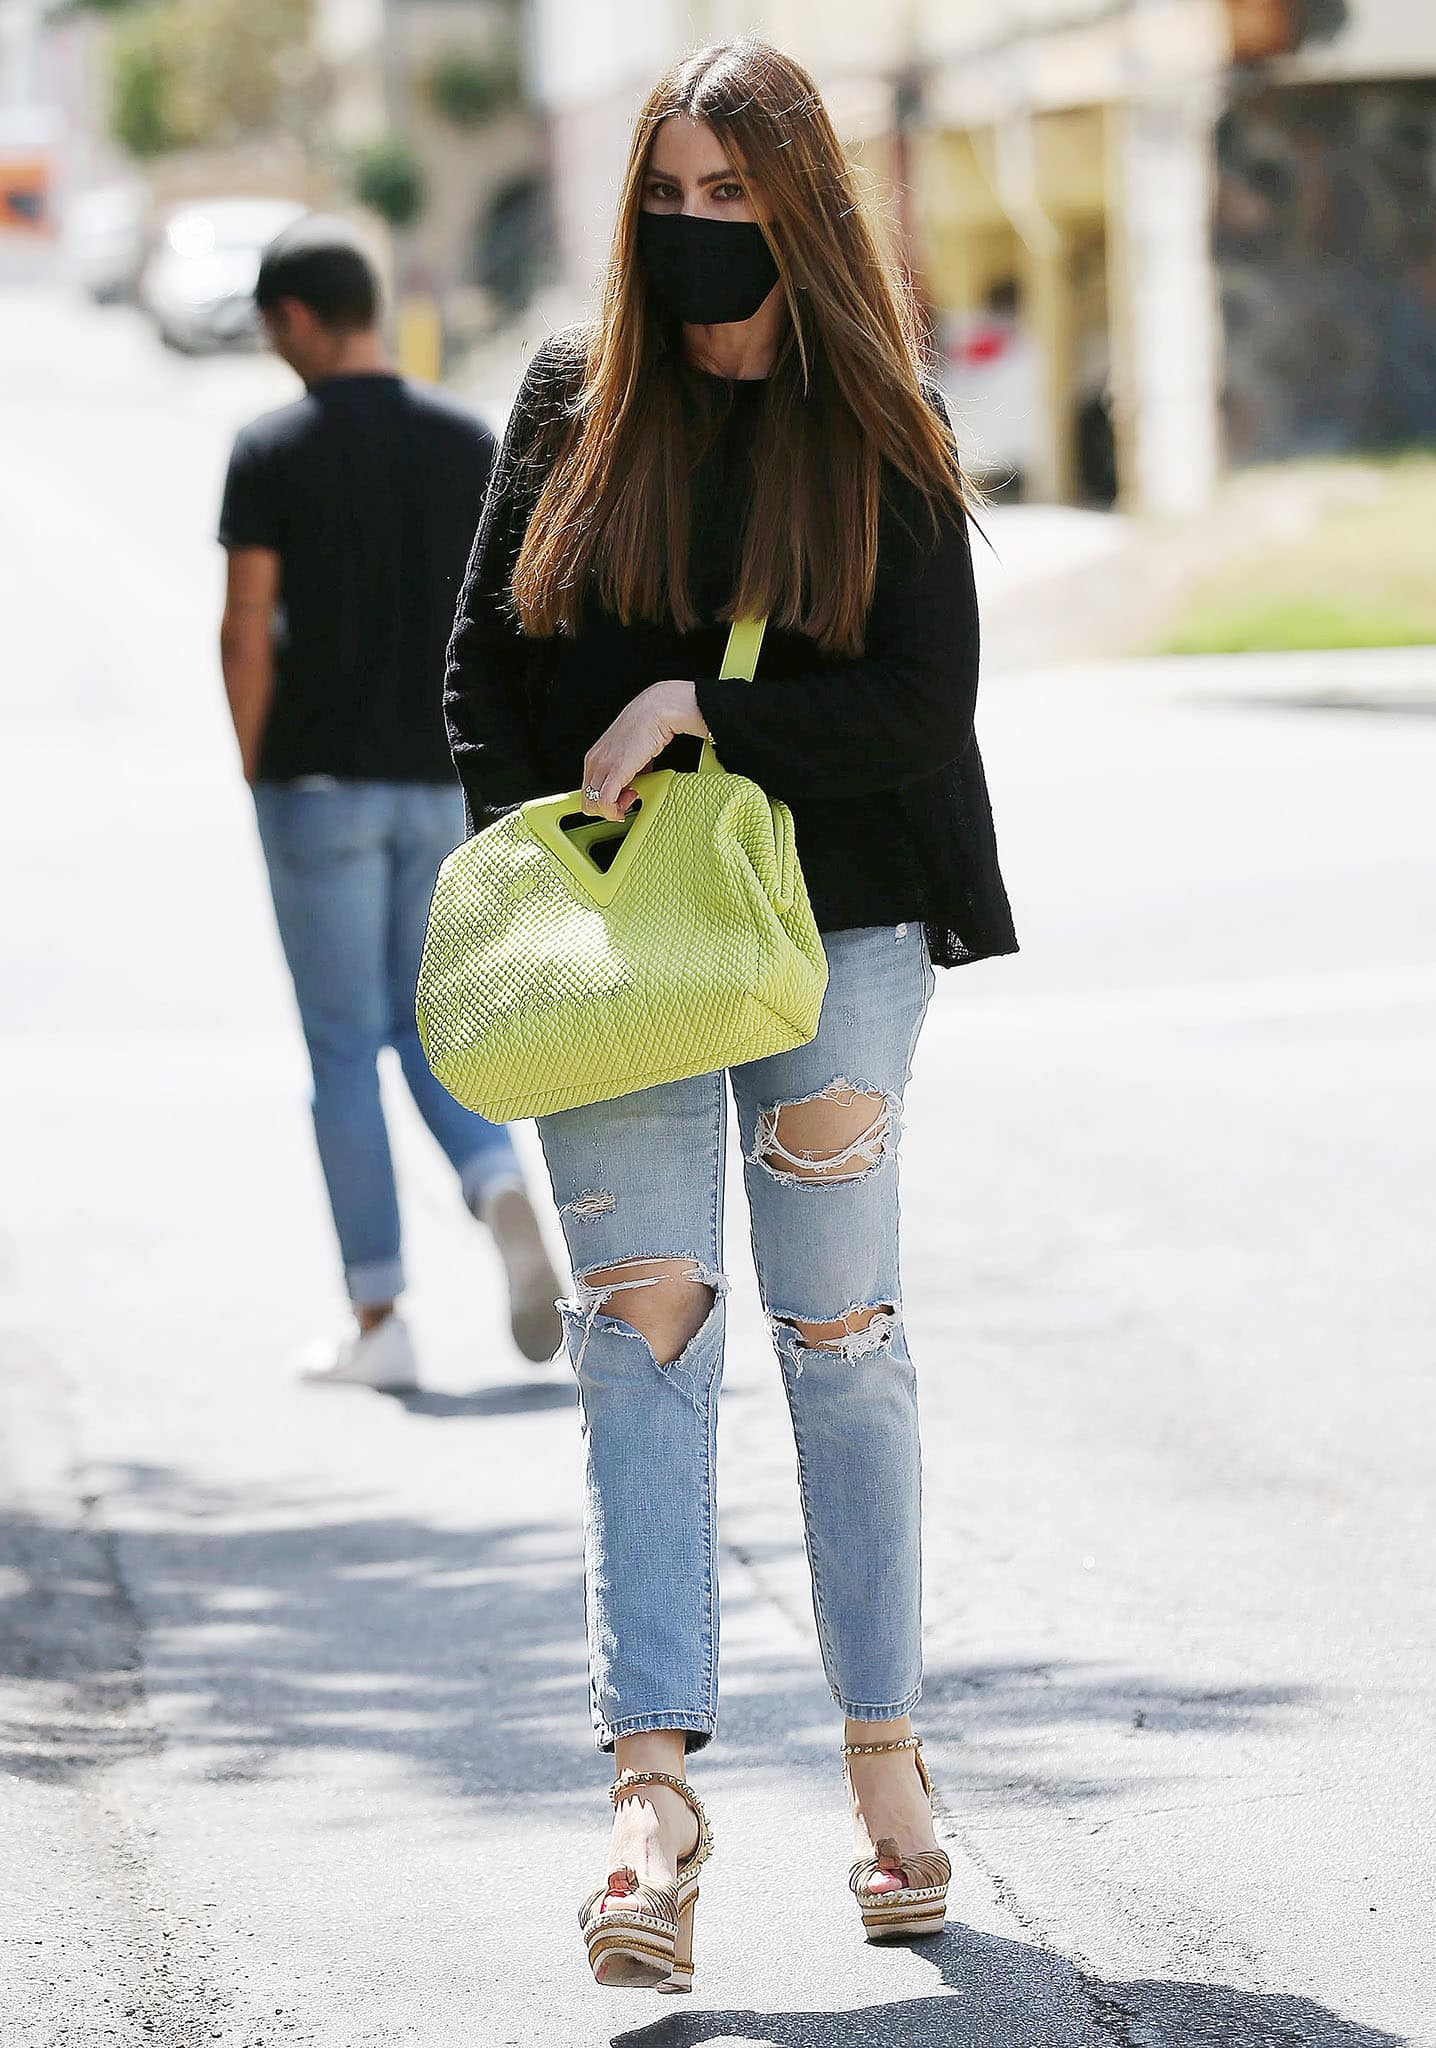 Sofia Vergara is seen house hunting in Los Angeles in a black knit top with ripped jeans on July 22, 2021